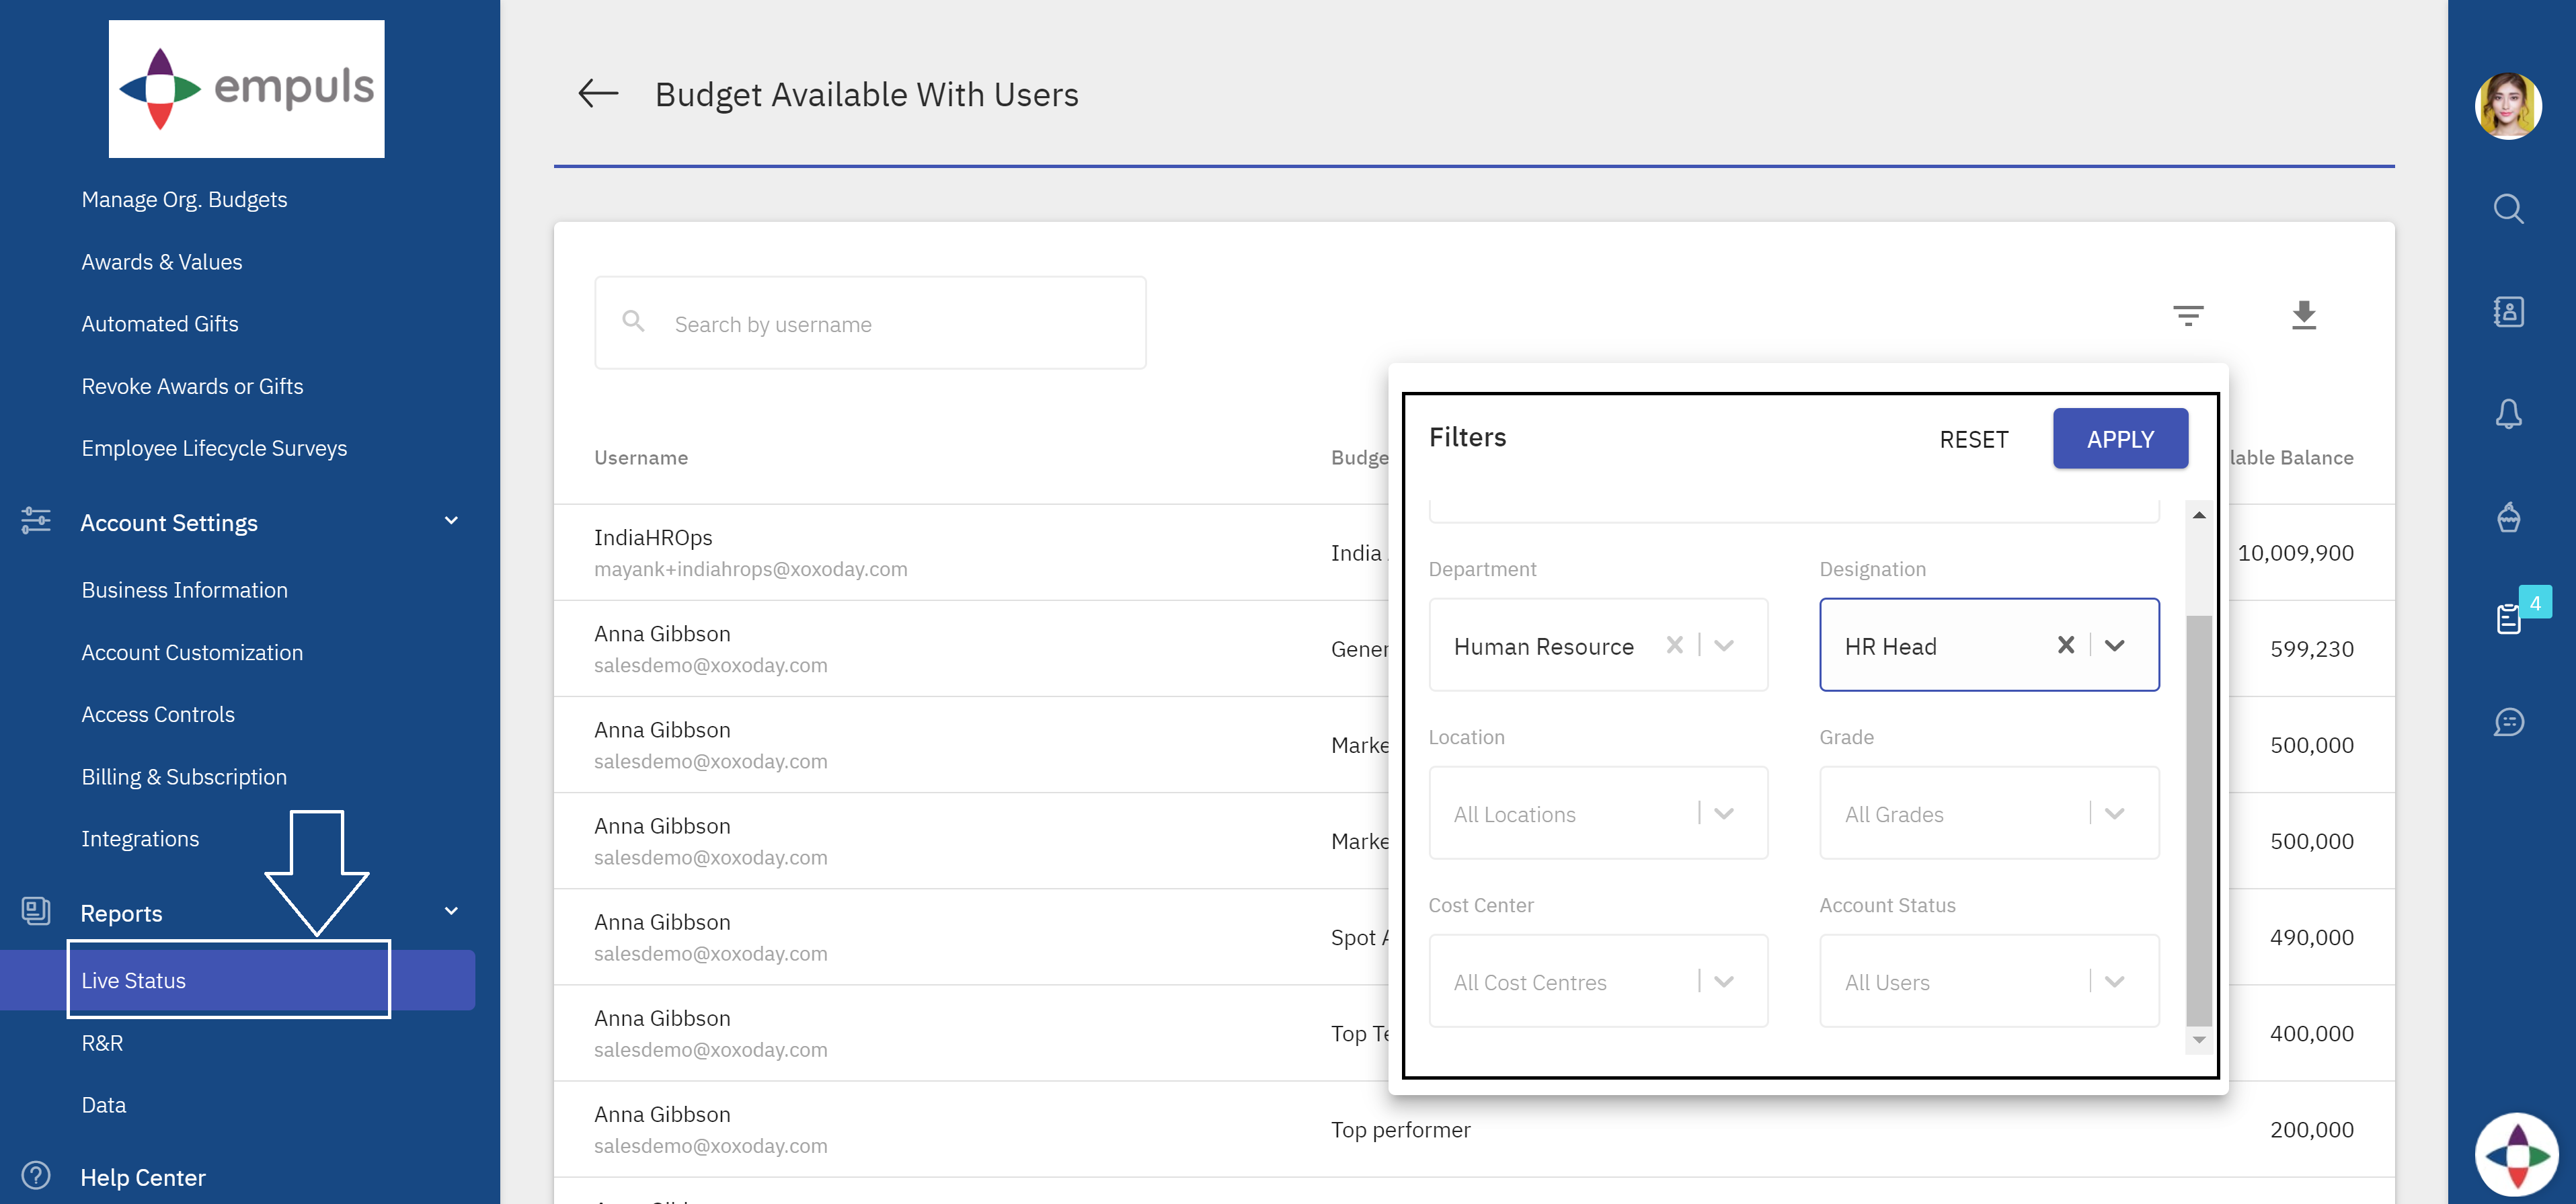 Filters in budgets available with the users